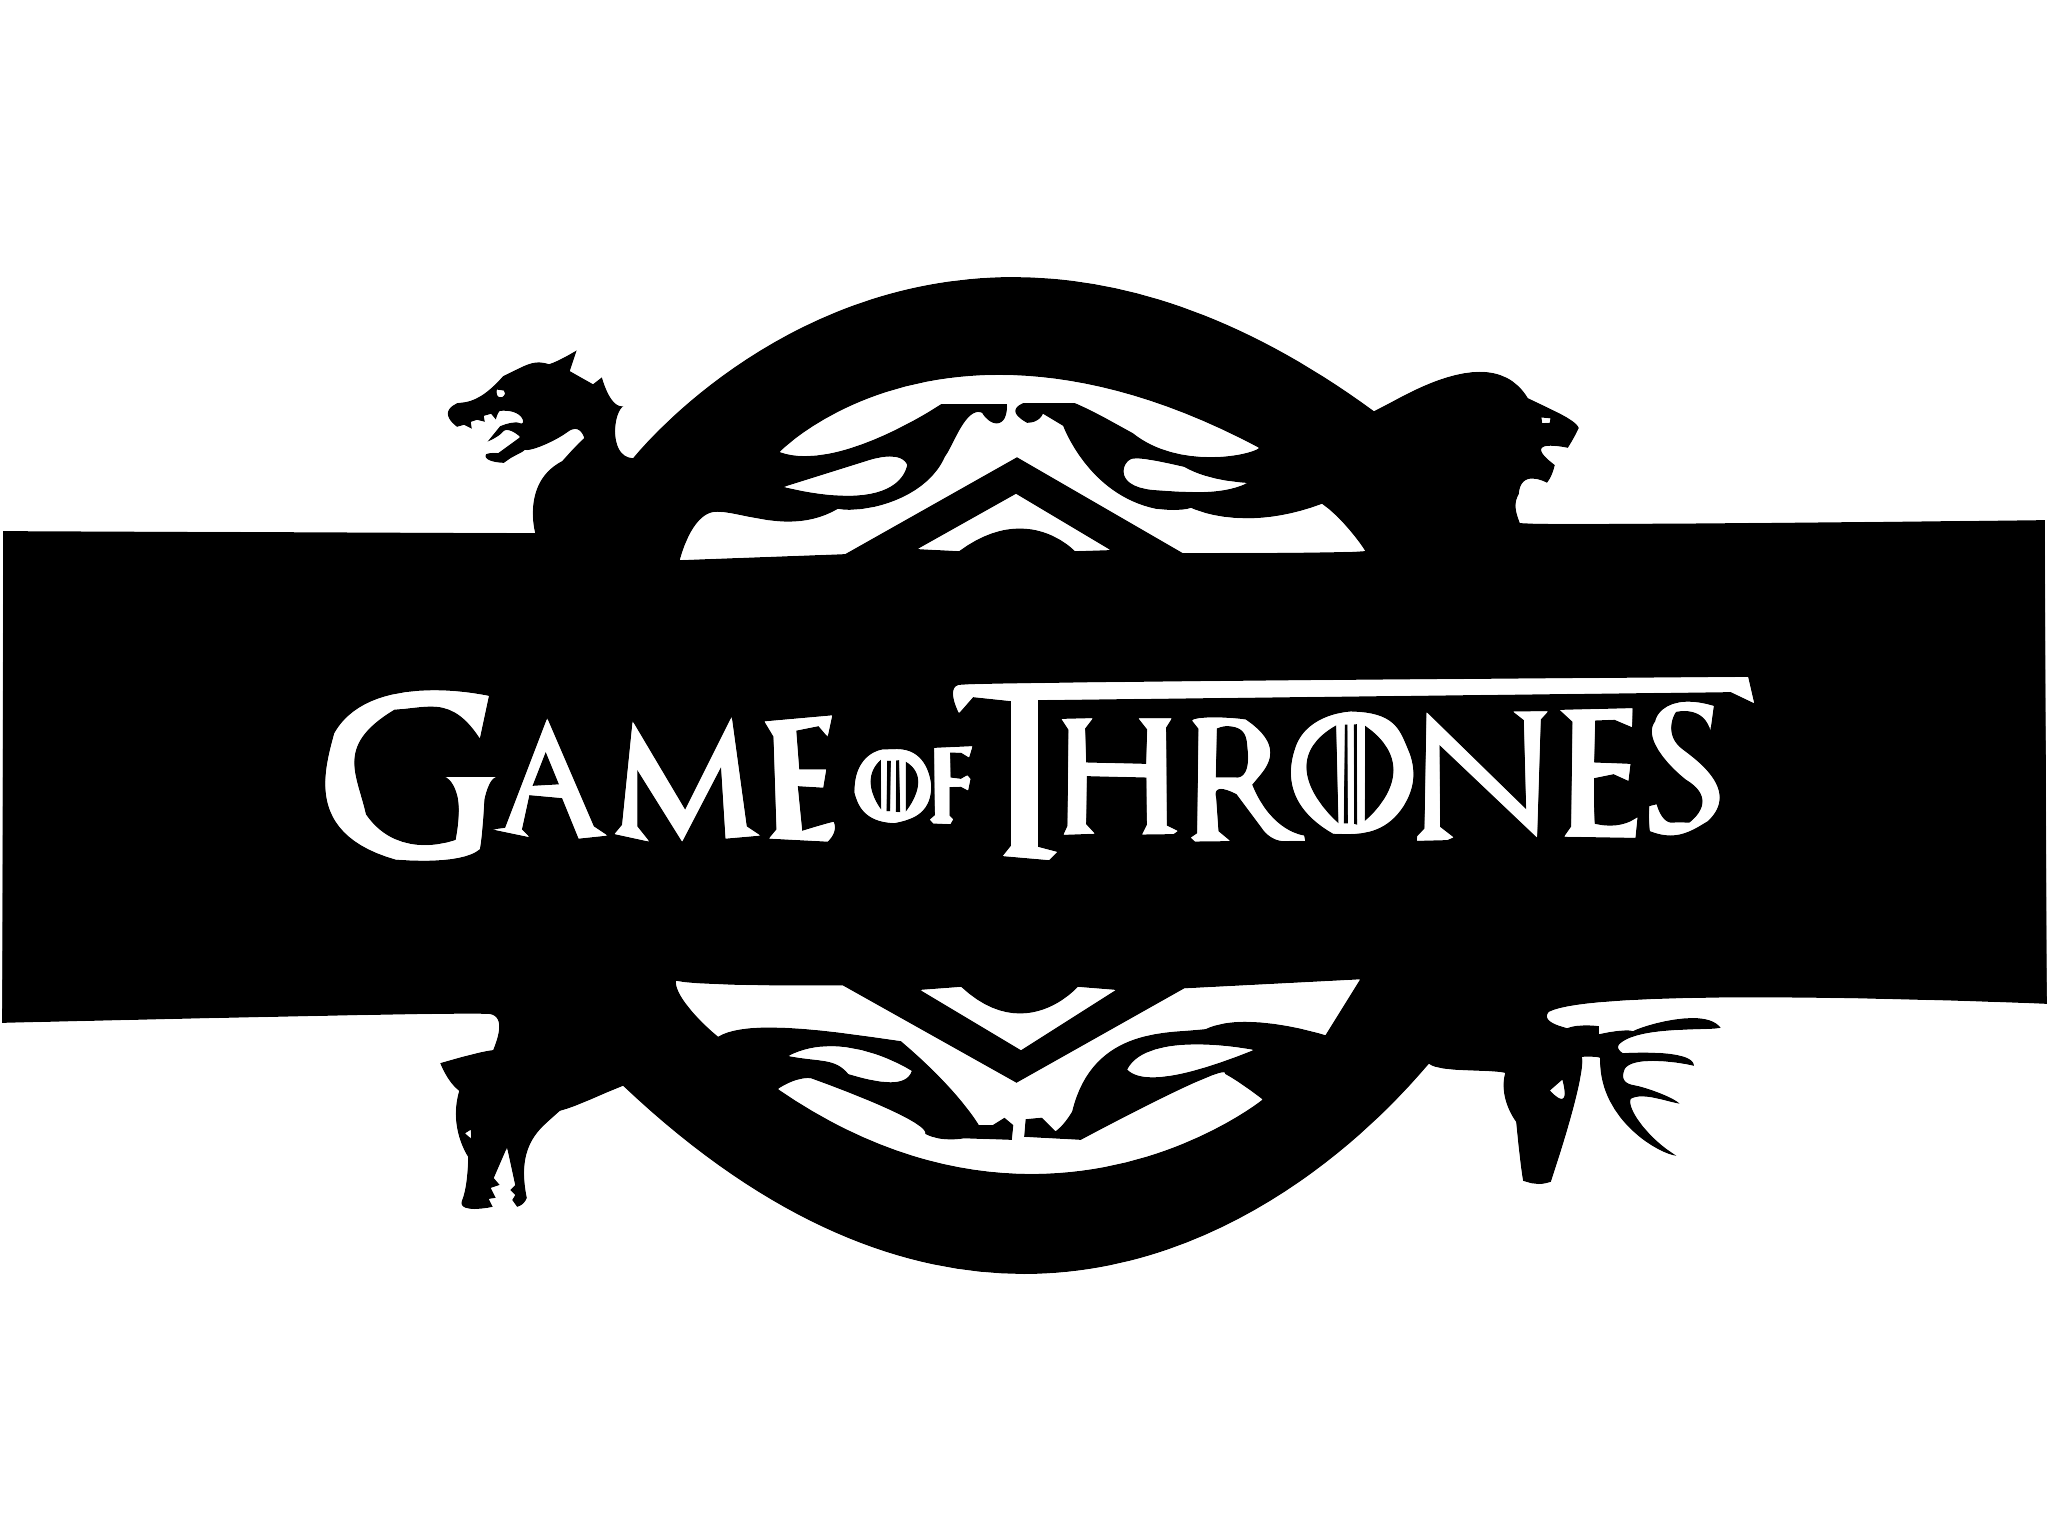 game of thrones stencil - Google Search - Game Of Thrones PNG